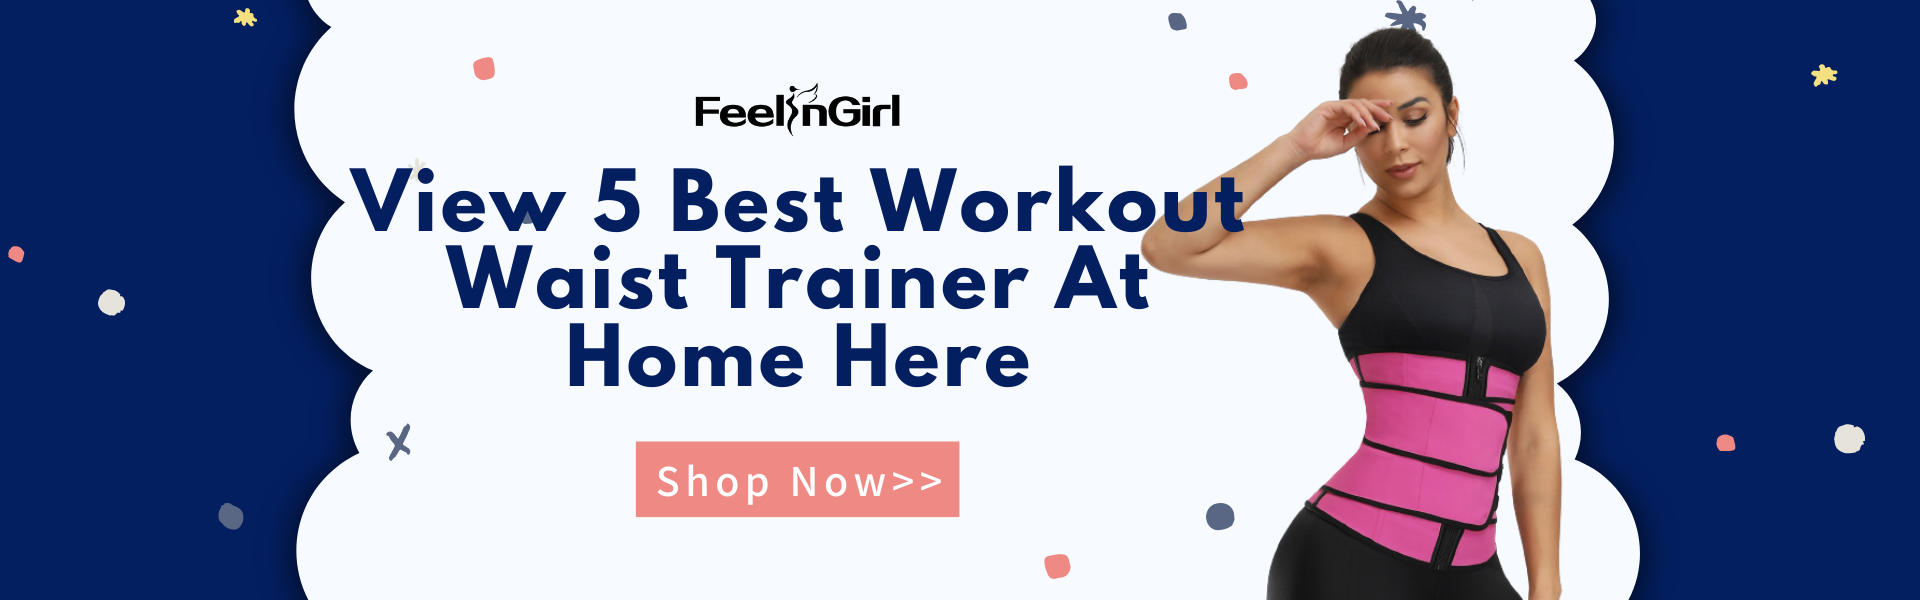 View 5 Best Workout Waist Trainer At Home Here